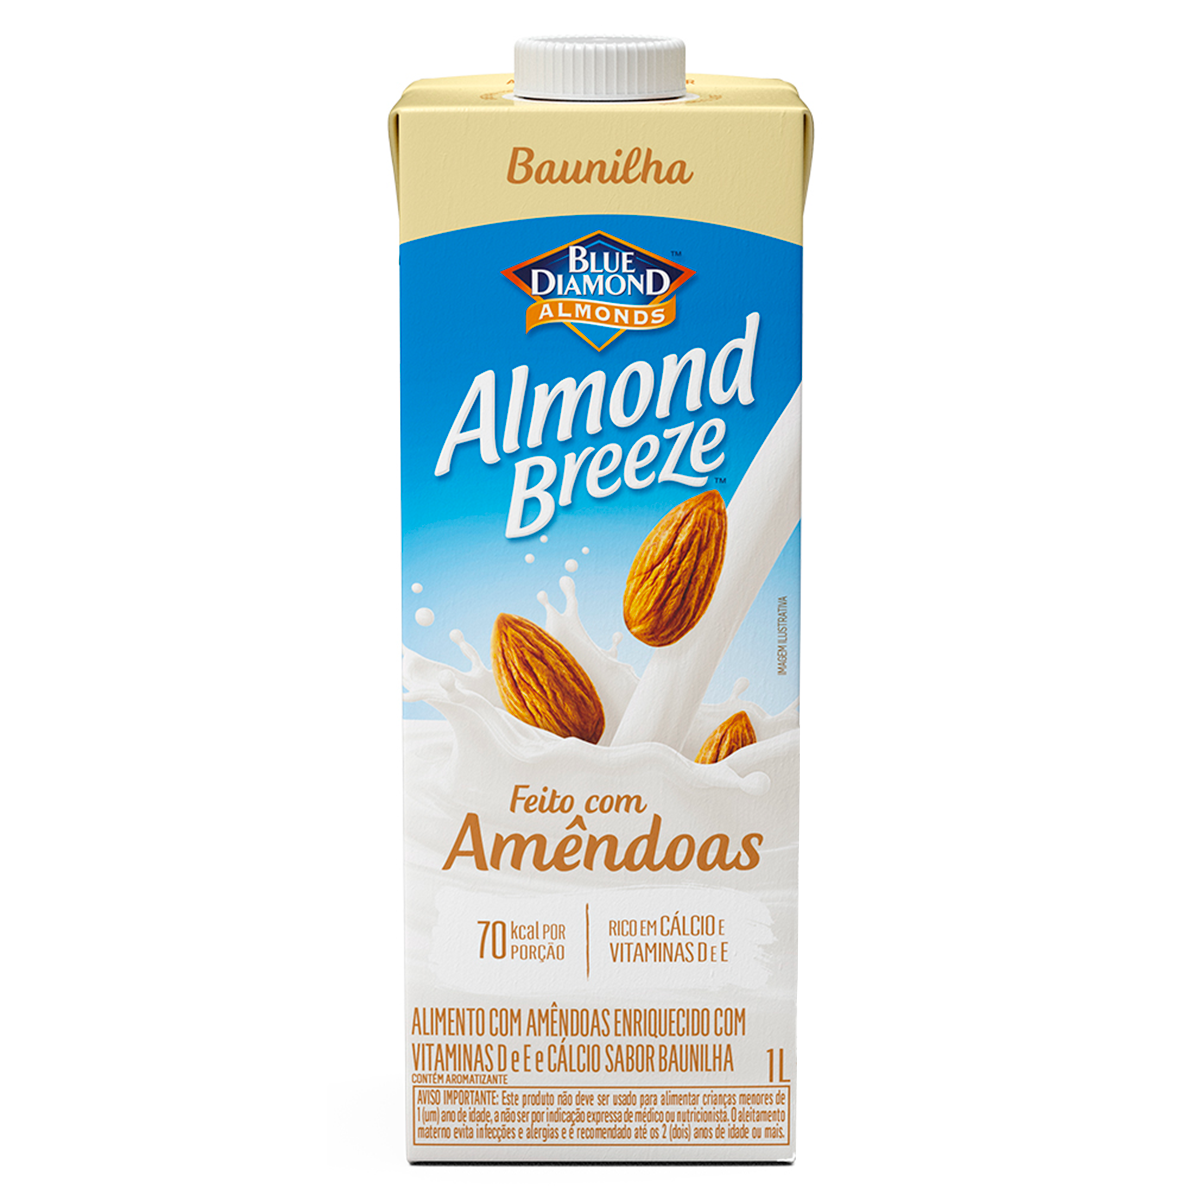 Bebida à Base de Amêndoa Baunilha Blue Diamond Almond Breeze Caixa 1l